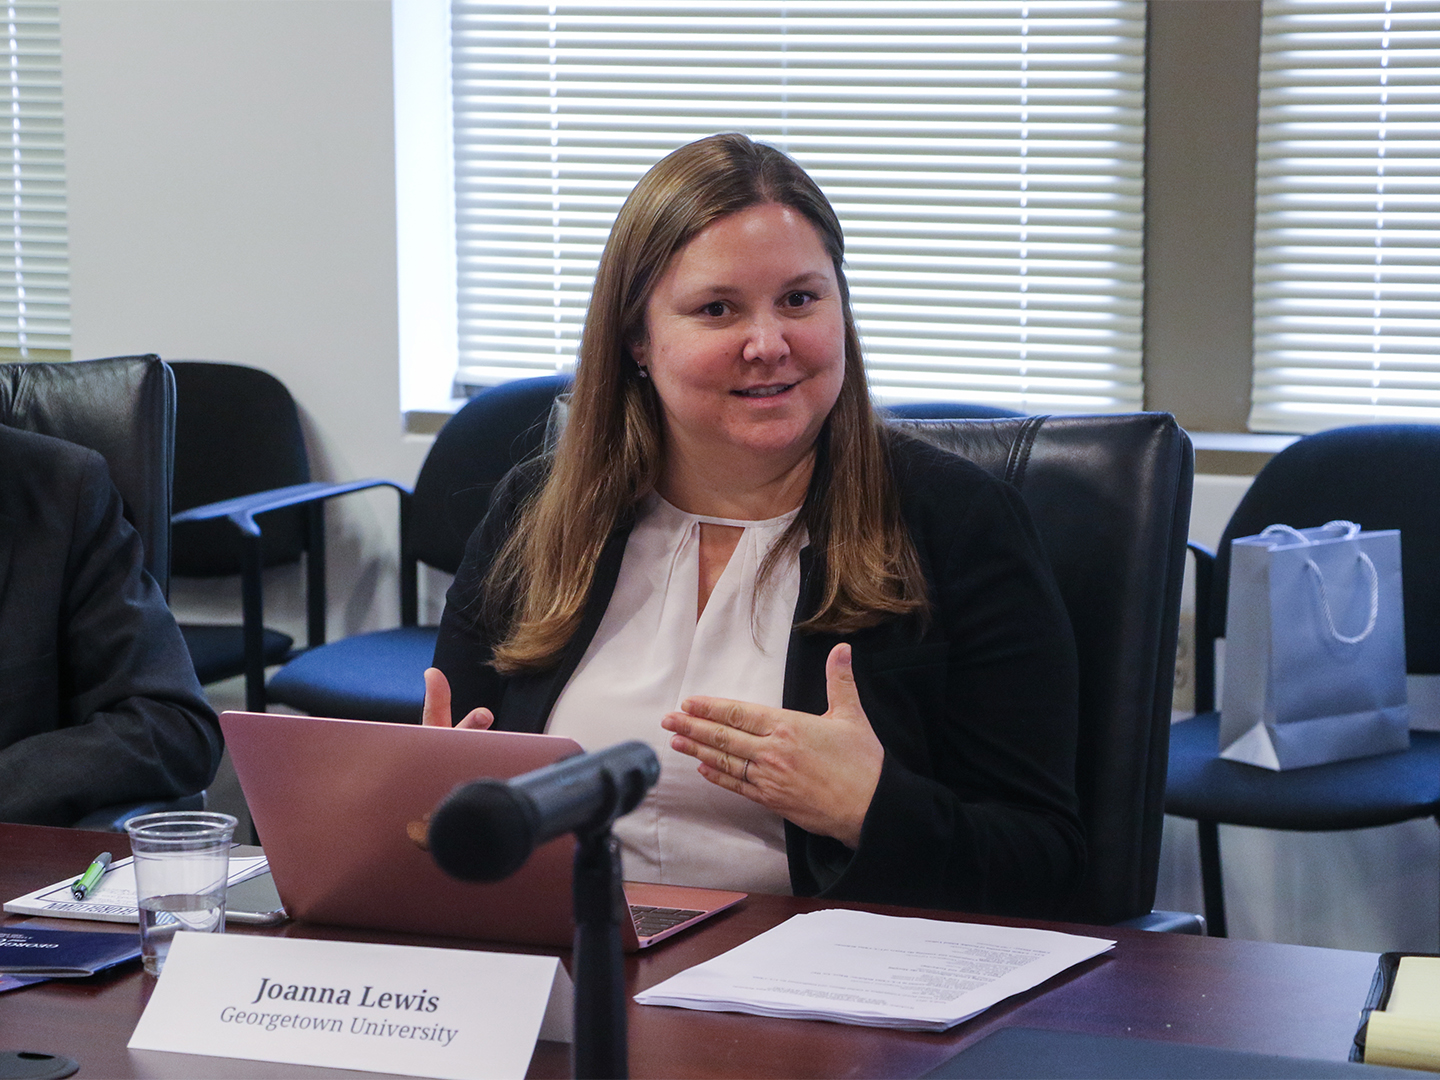 Professor Joanna Lewis provides insight on economic exchanges between the United States and China.